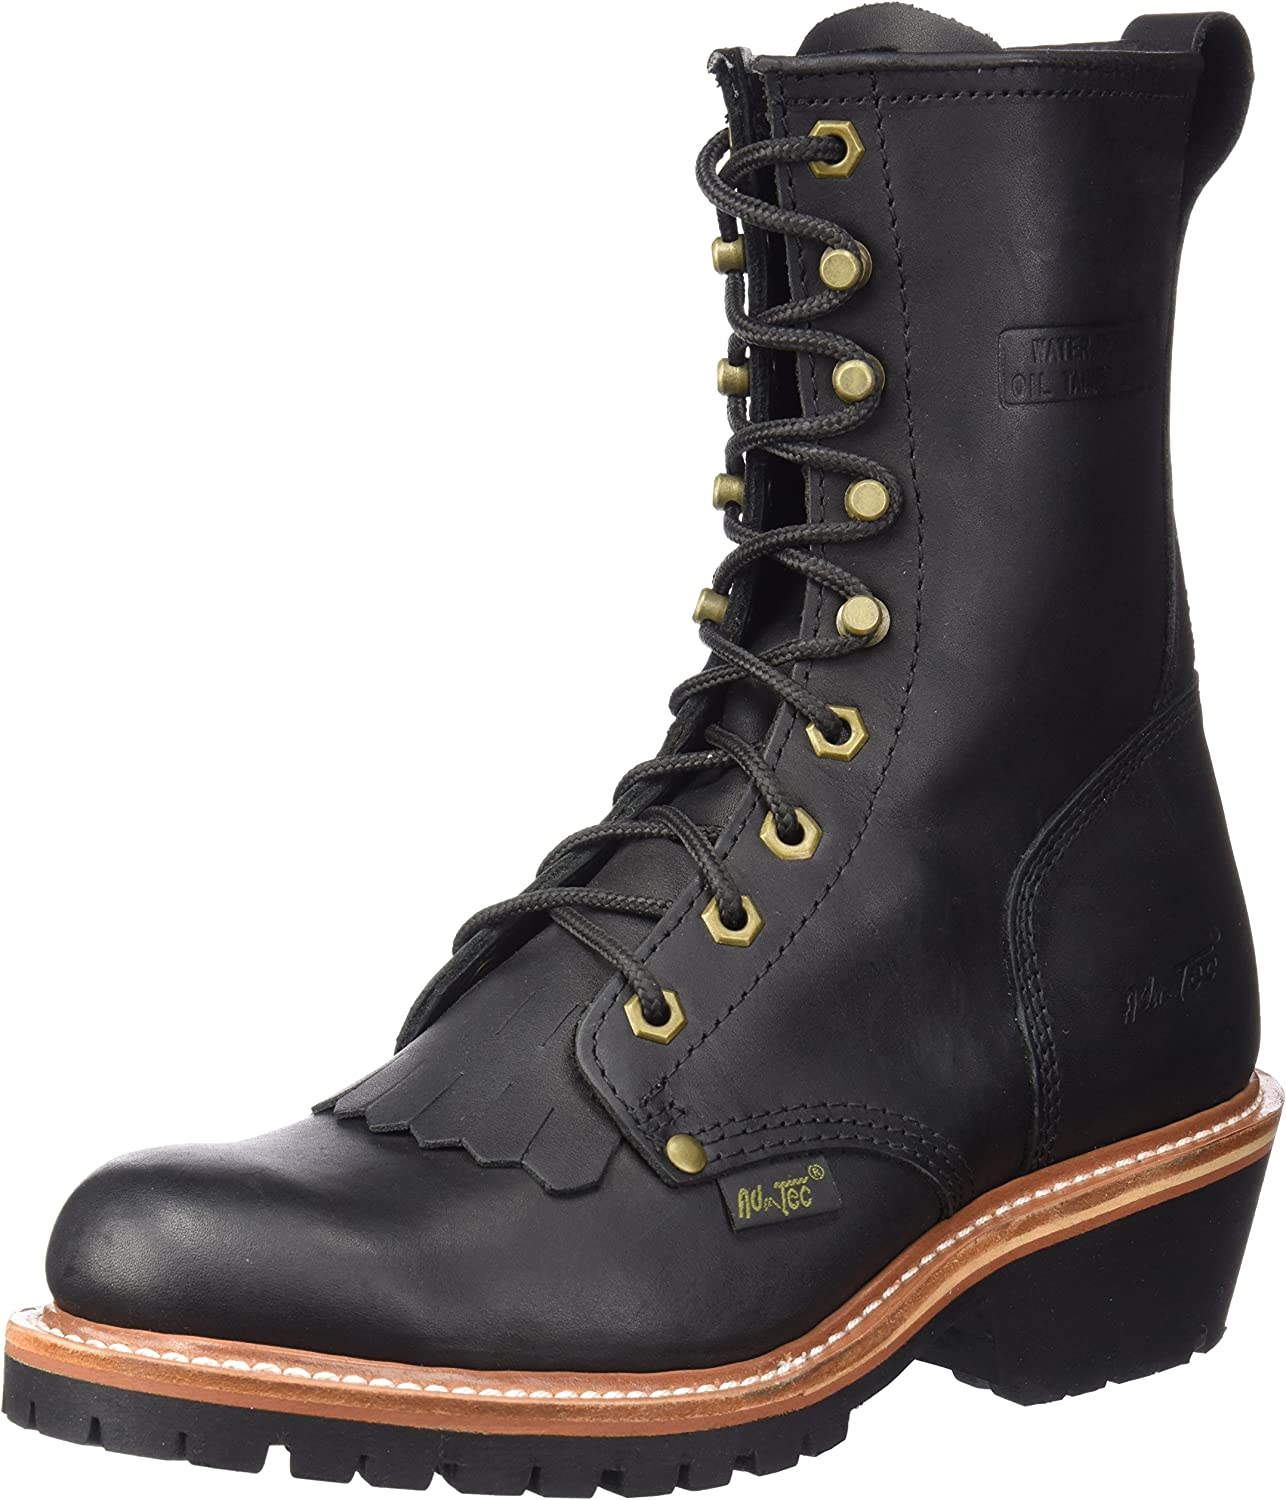 "Ad Tec Men's 1964 10"" Fireman Logger Black Work Boot (Black, Numeric_9_Point_5)"